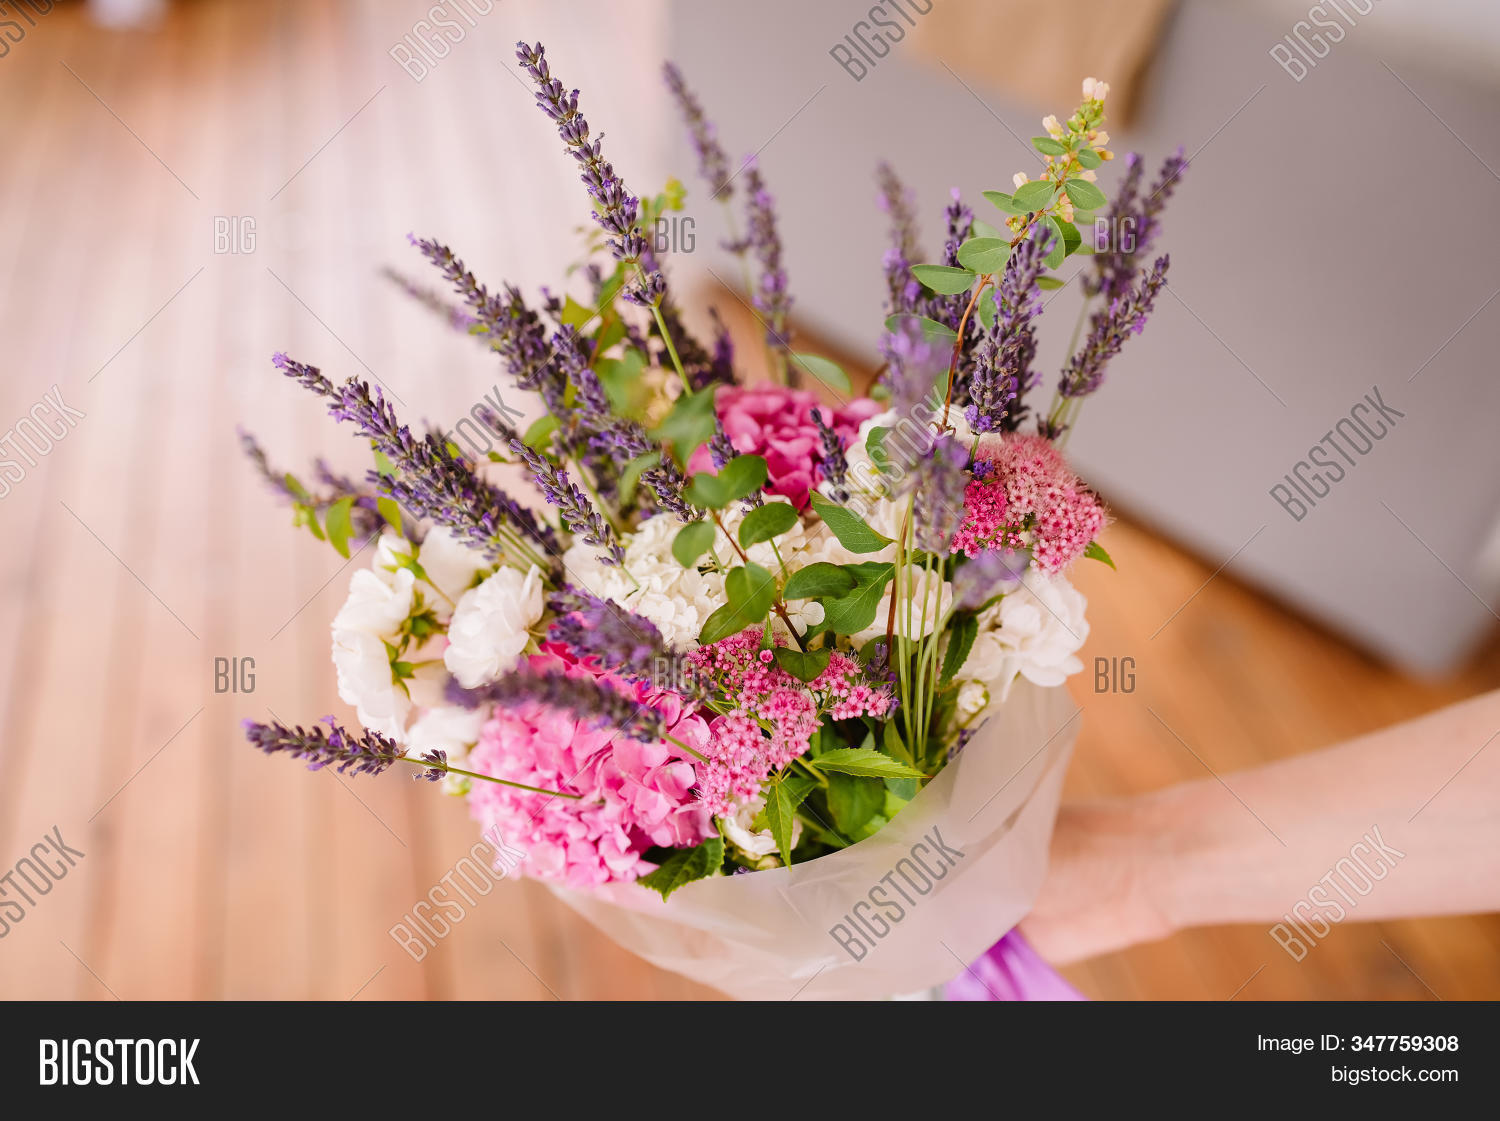 Bouquet Lavender Dry Image Photo Free Trial Bigstock